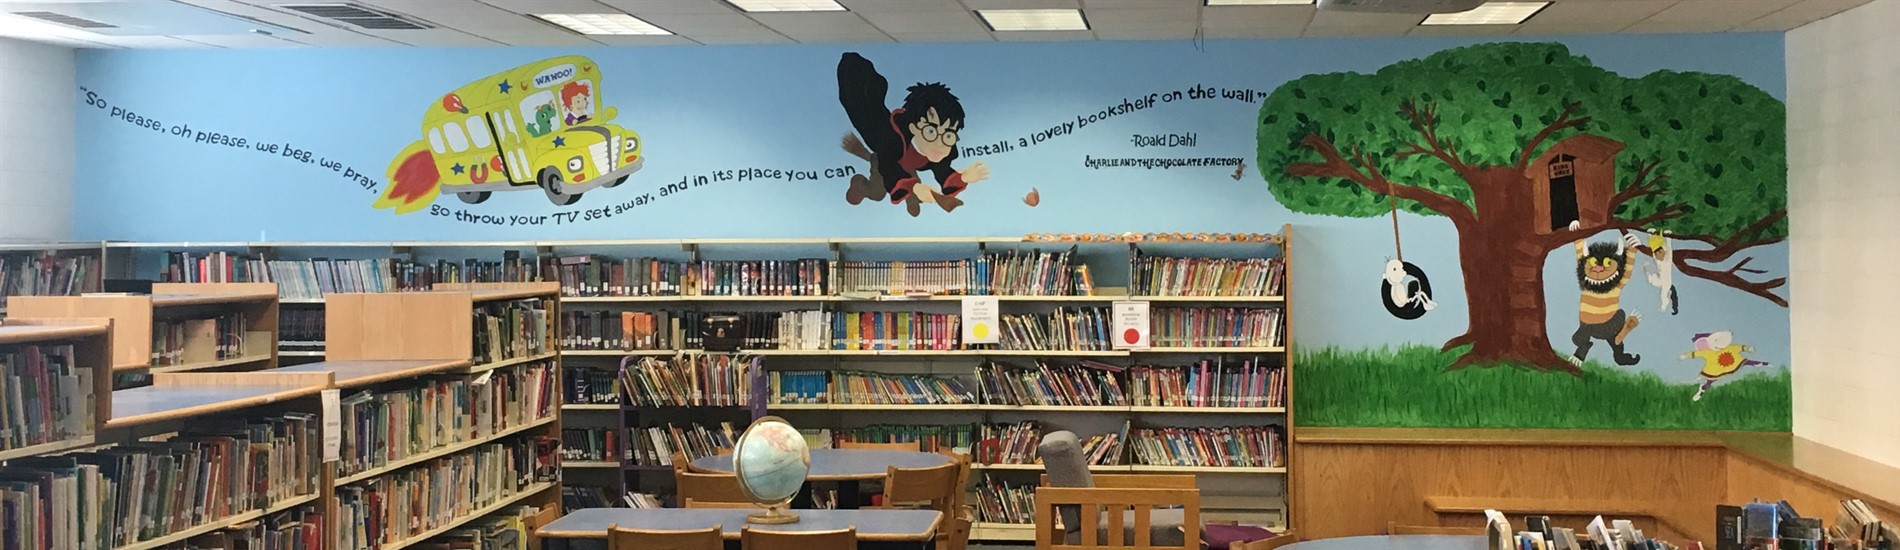 library mural 2